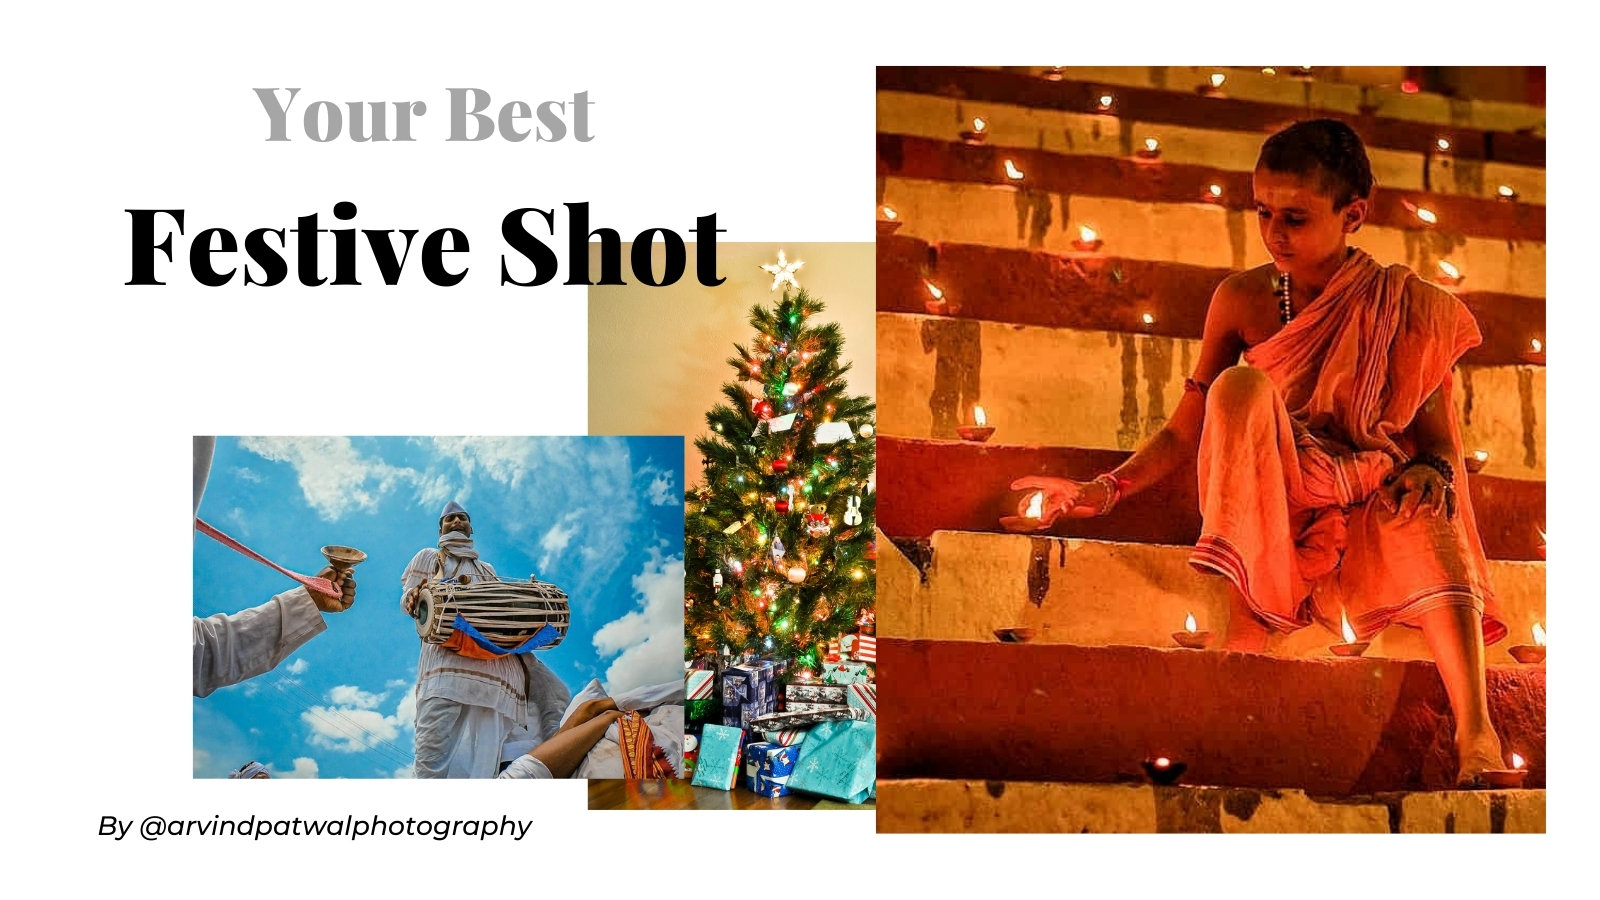 Your best Festive Shot - Photography Challenge